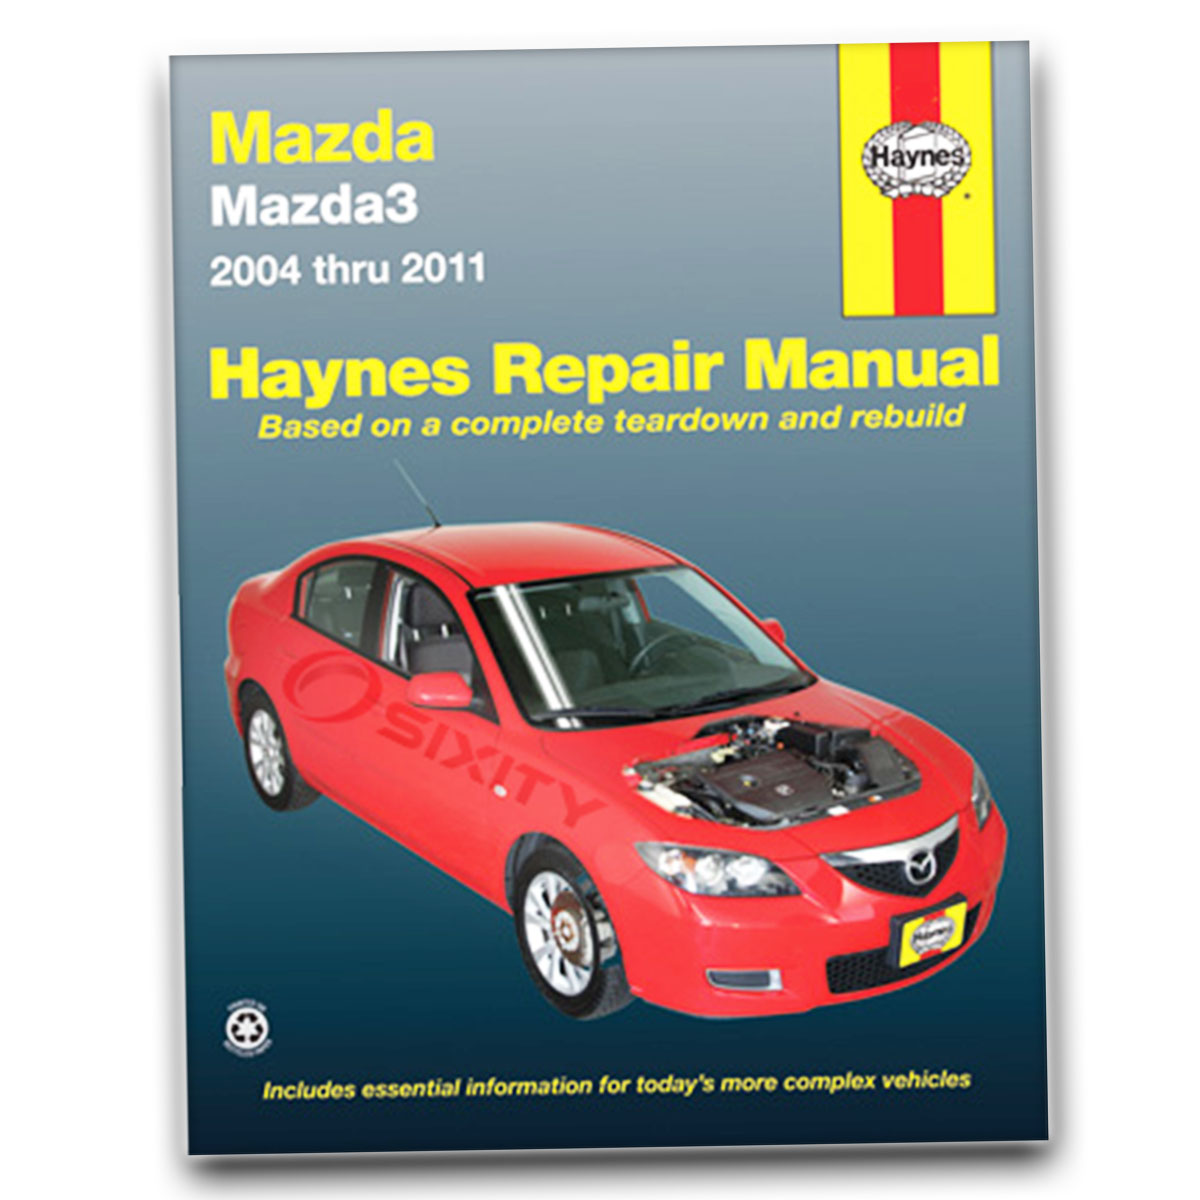 mazda 3 haynes repair manual i mazdaspeed sp23 shop service garage rh ebay com mazda 3 service repair manual pdf mazda 3 service repair manual pdf